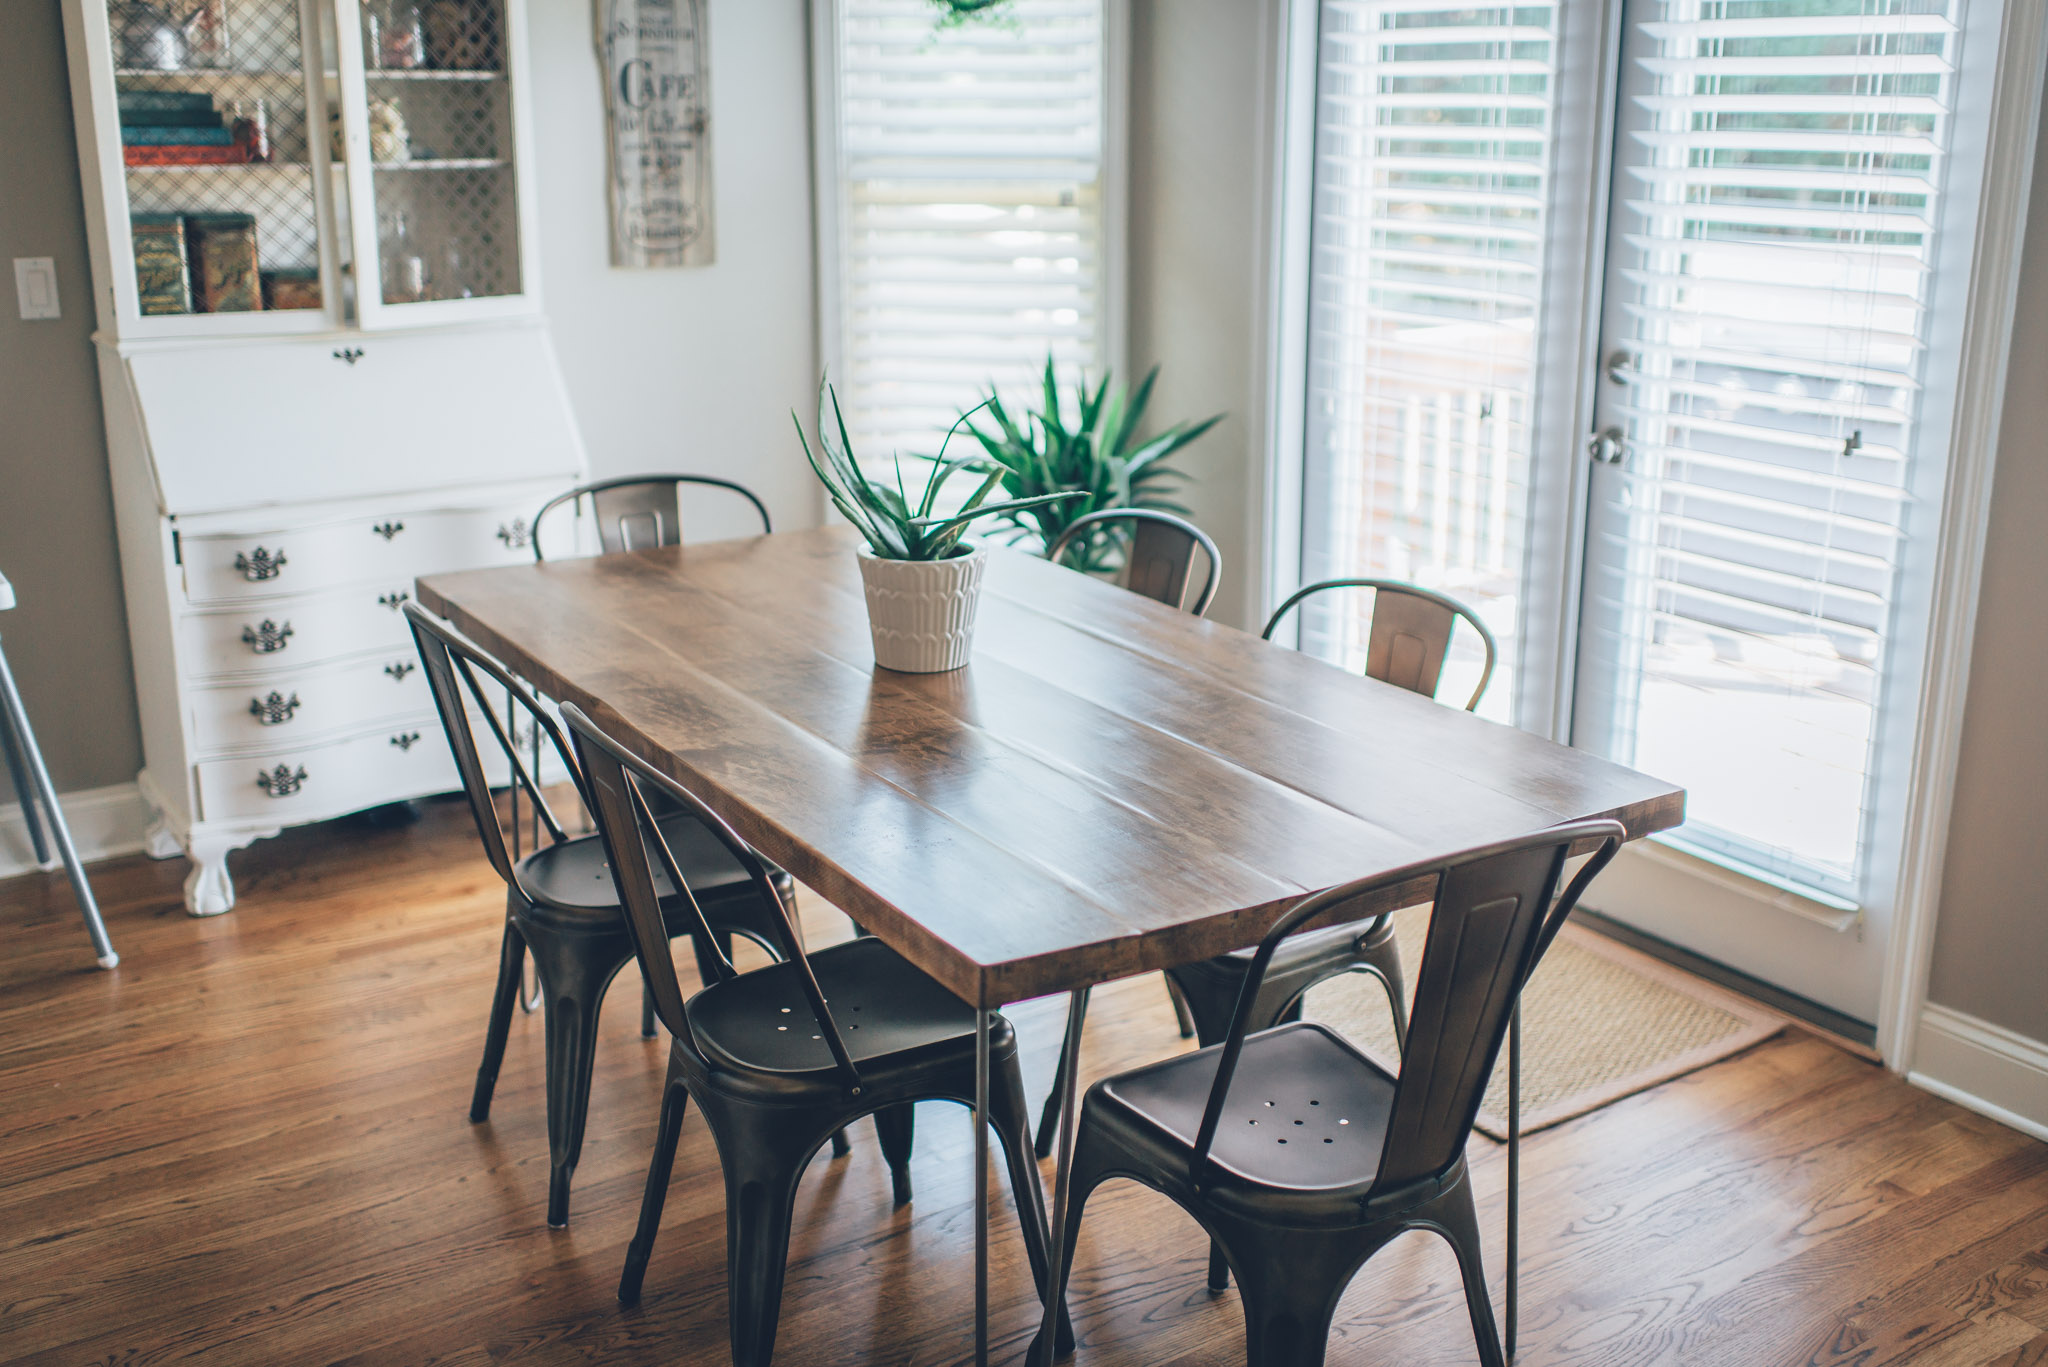 diy kitchen tables laminate tile flooring hairpin leg table the southern trunk